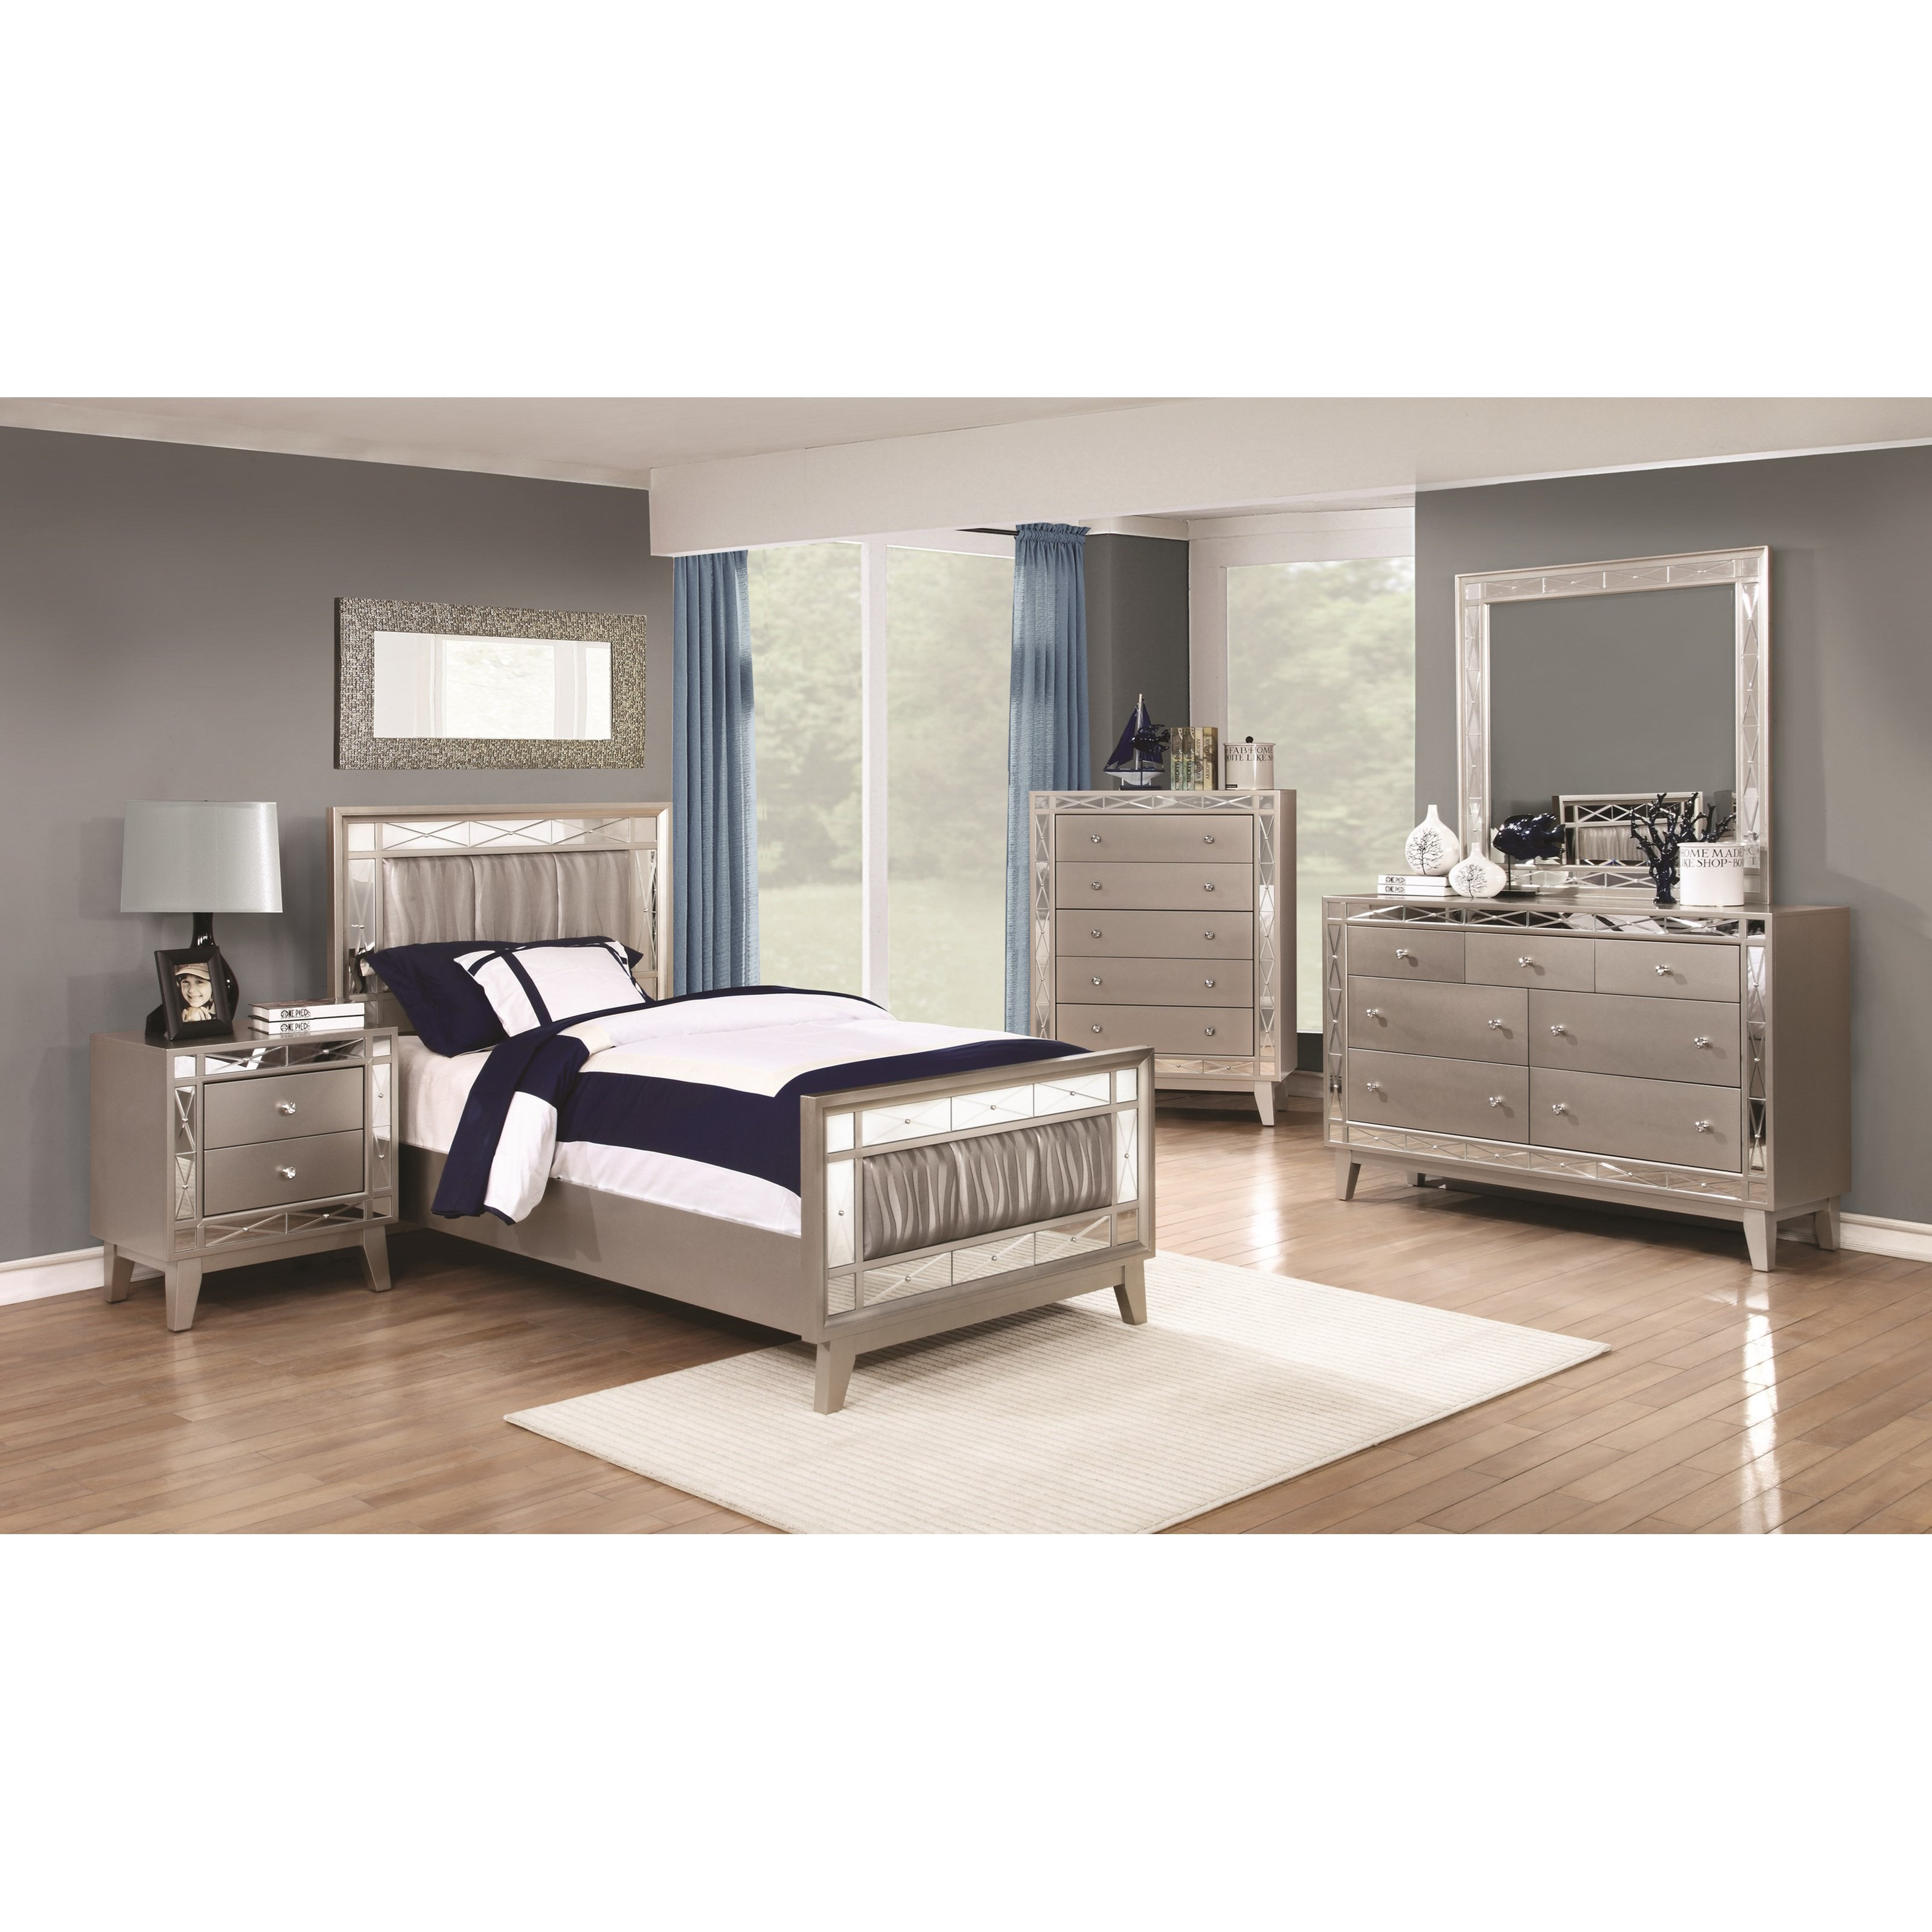 Leighton Twin Bedroom Group by Coaster at Northeast Factory Direct